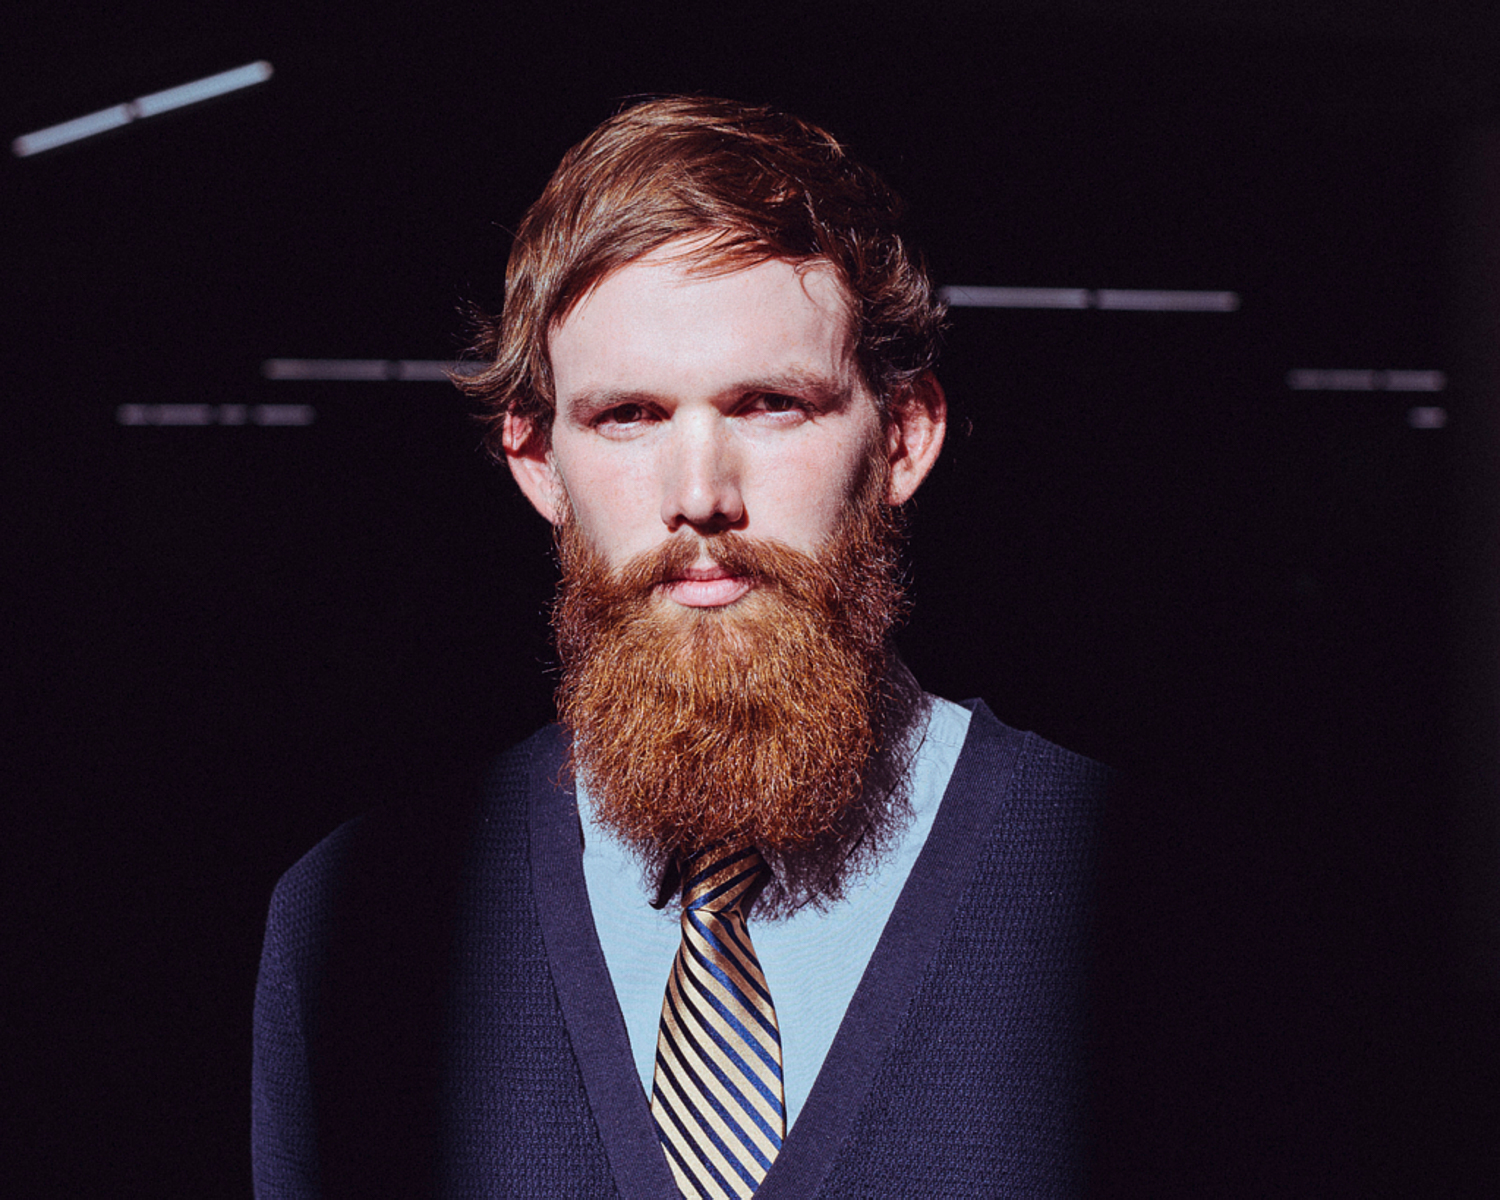 portrait photographer Tim Cole captures man with red beard and yellow tie